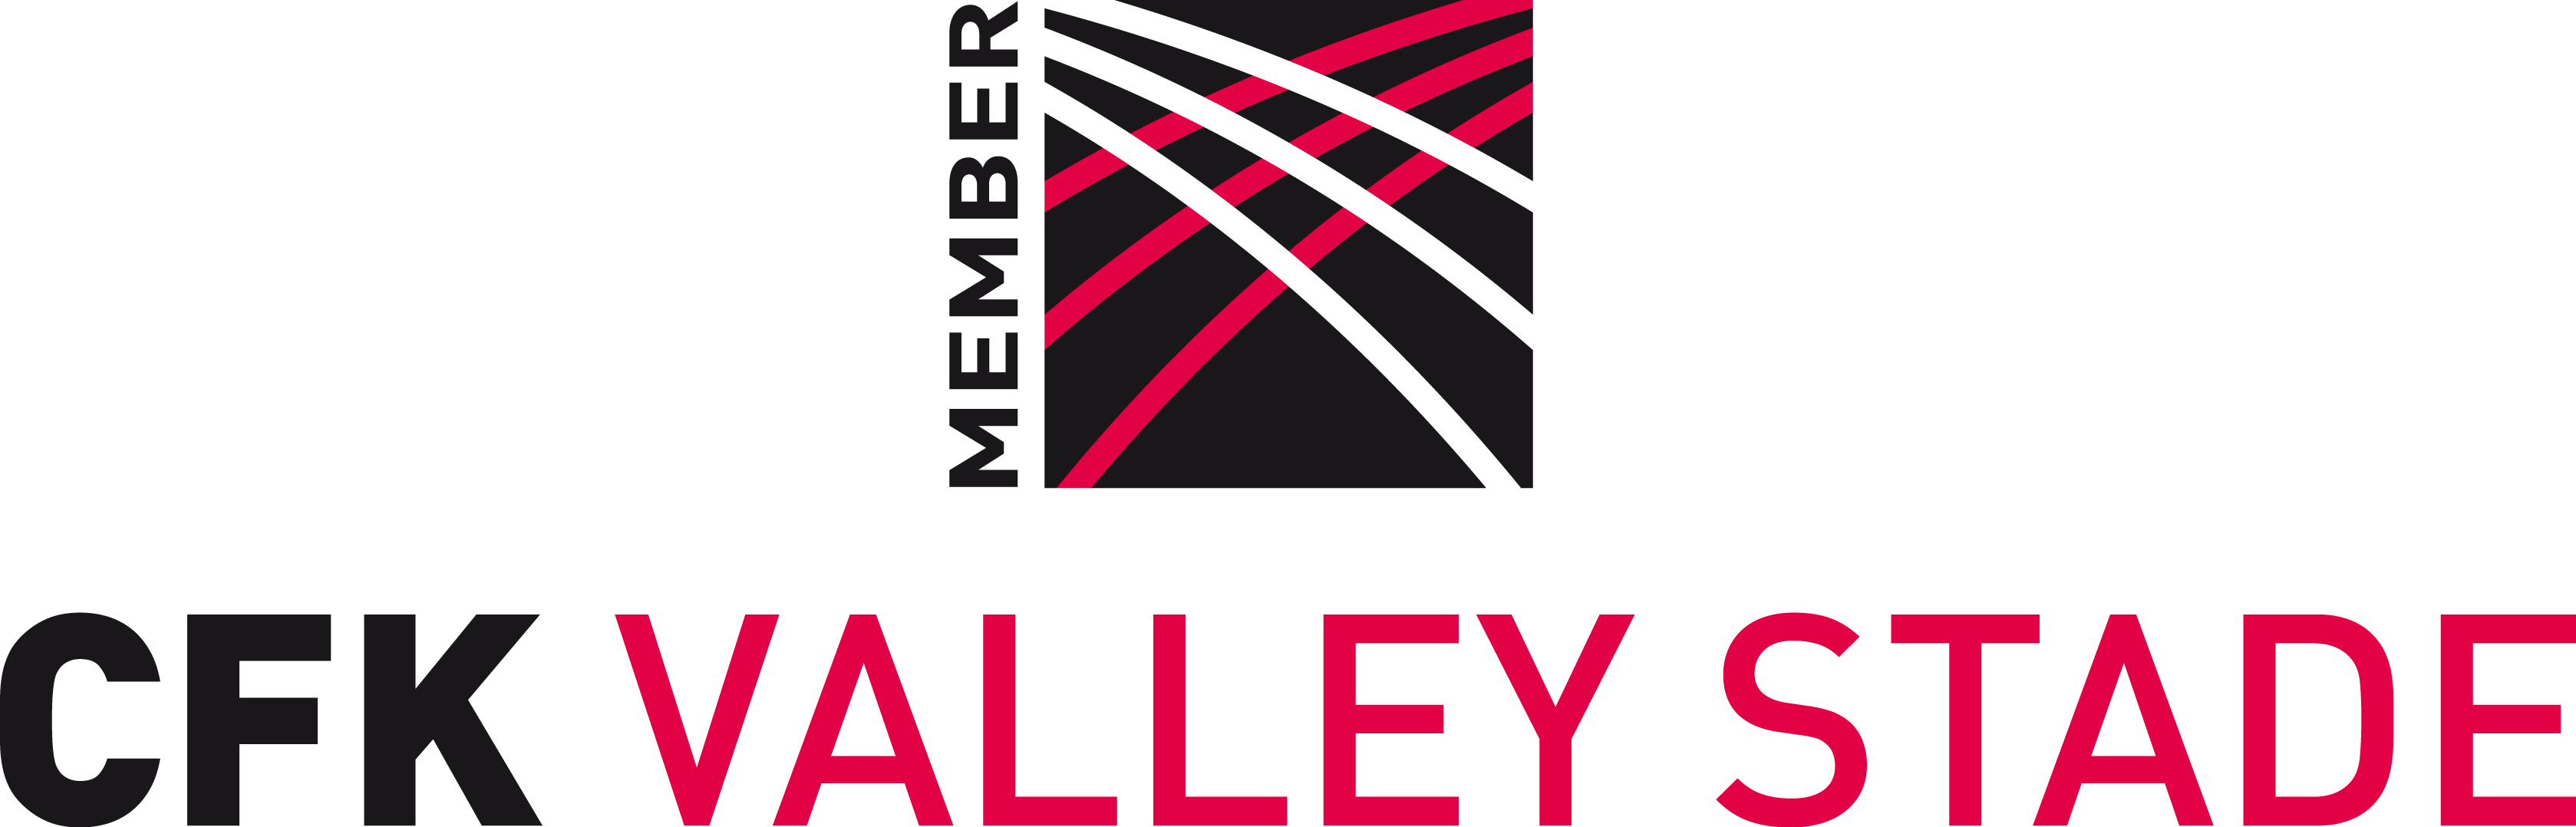 CFK Valley Stade - Member